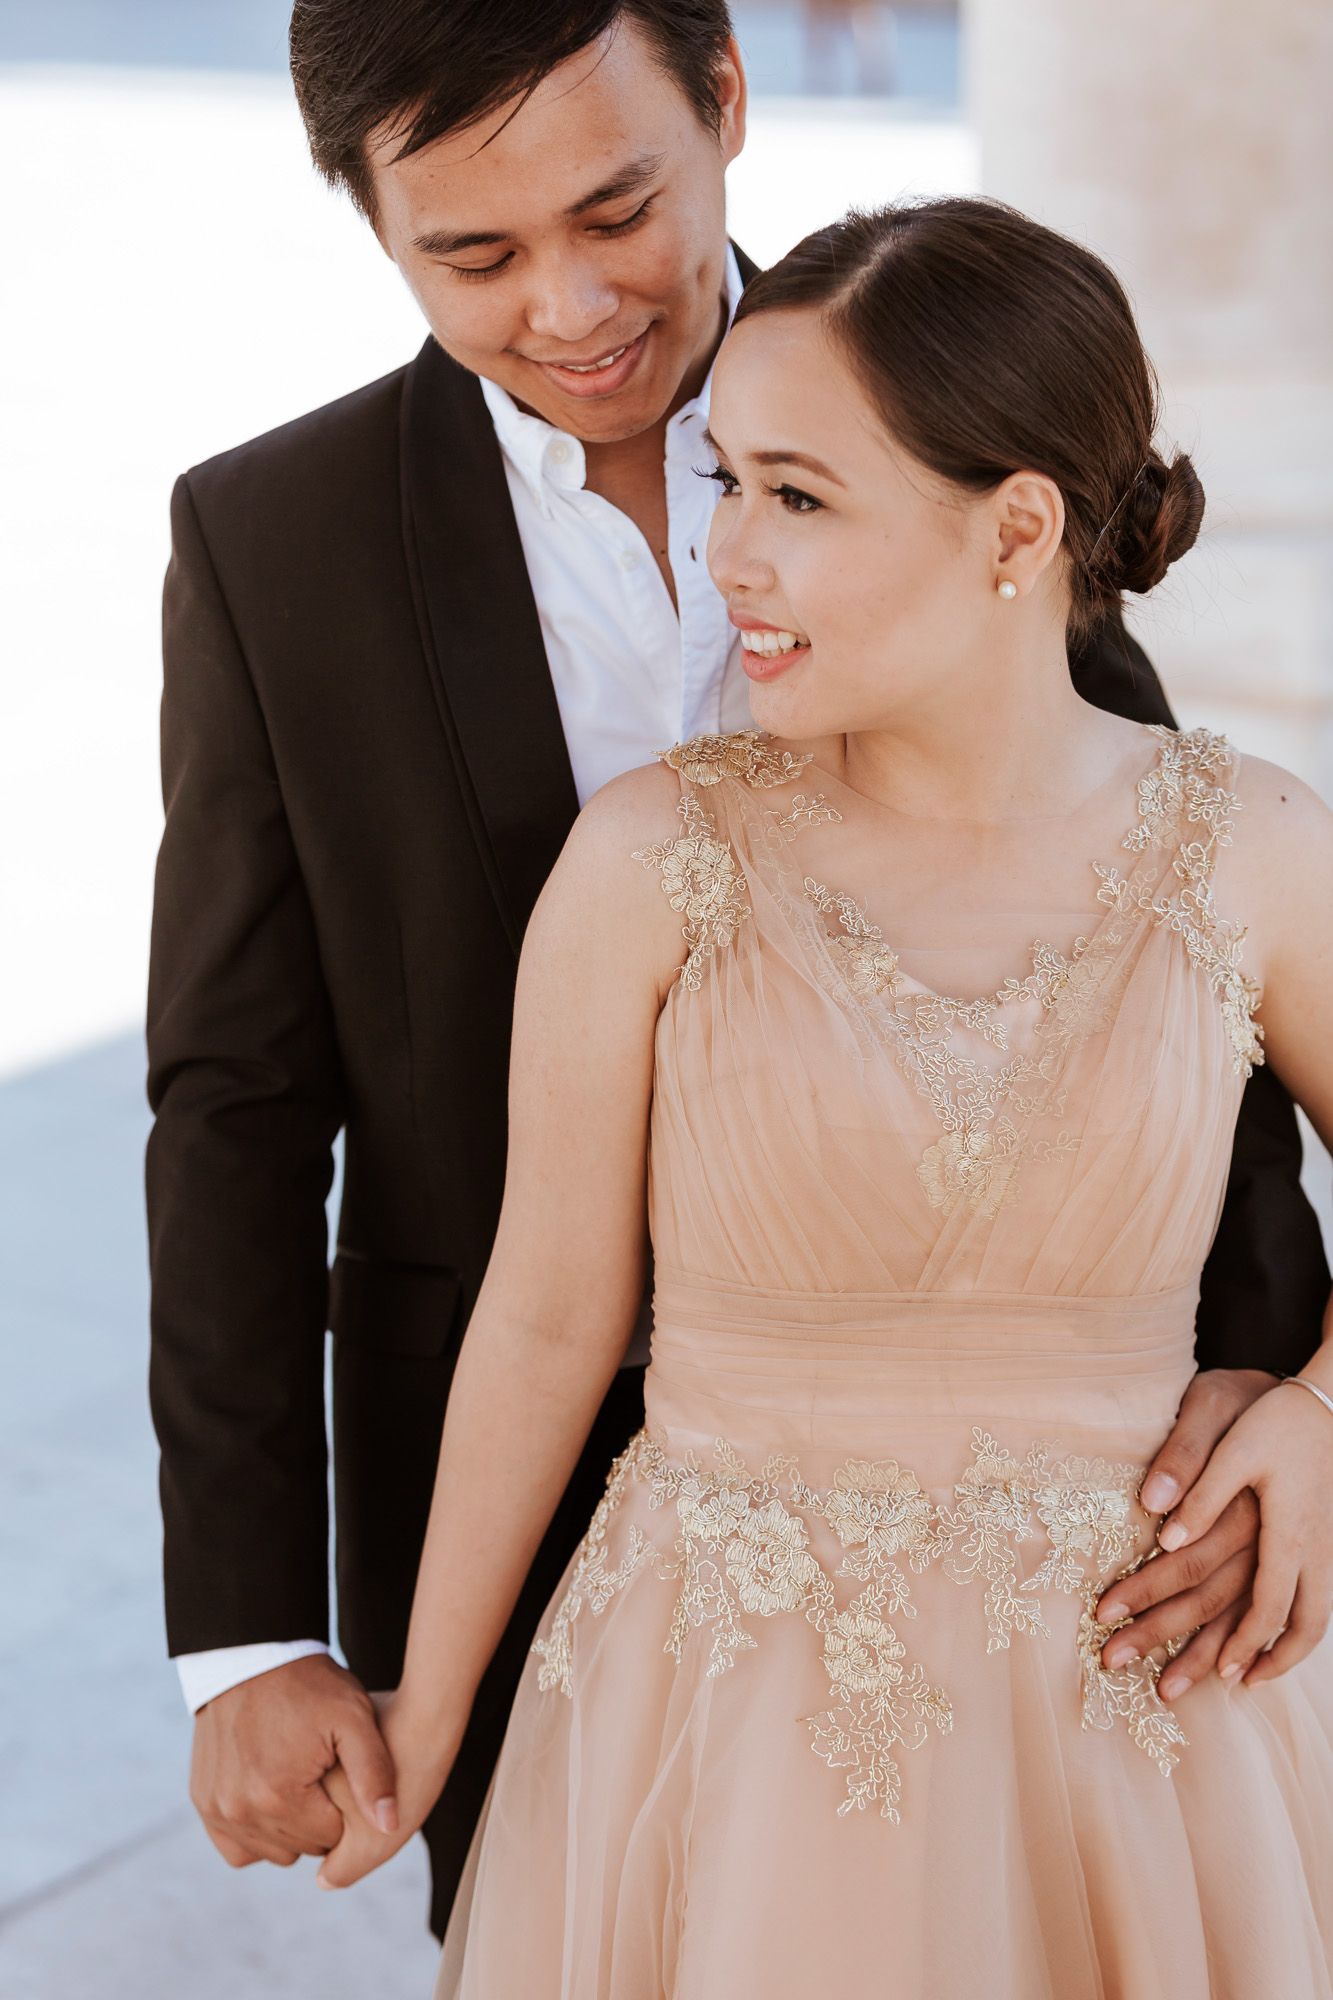 Pre-wedding smiling couple portrait holding hands captured by Paris Photographer Federico Guendel